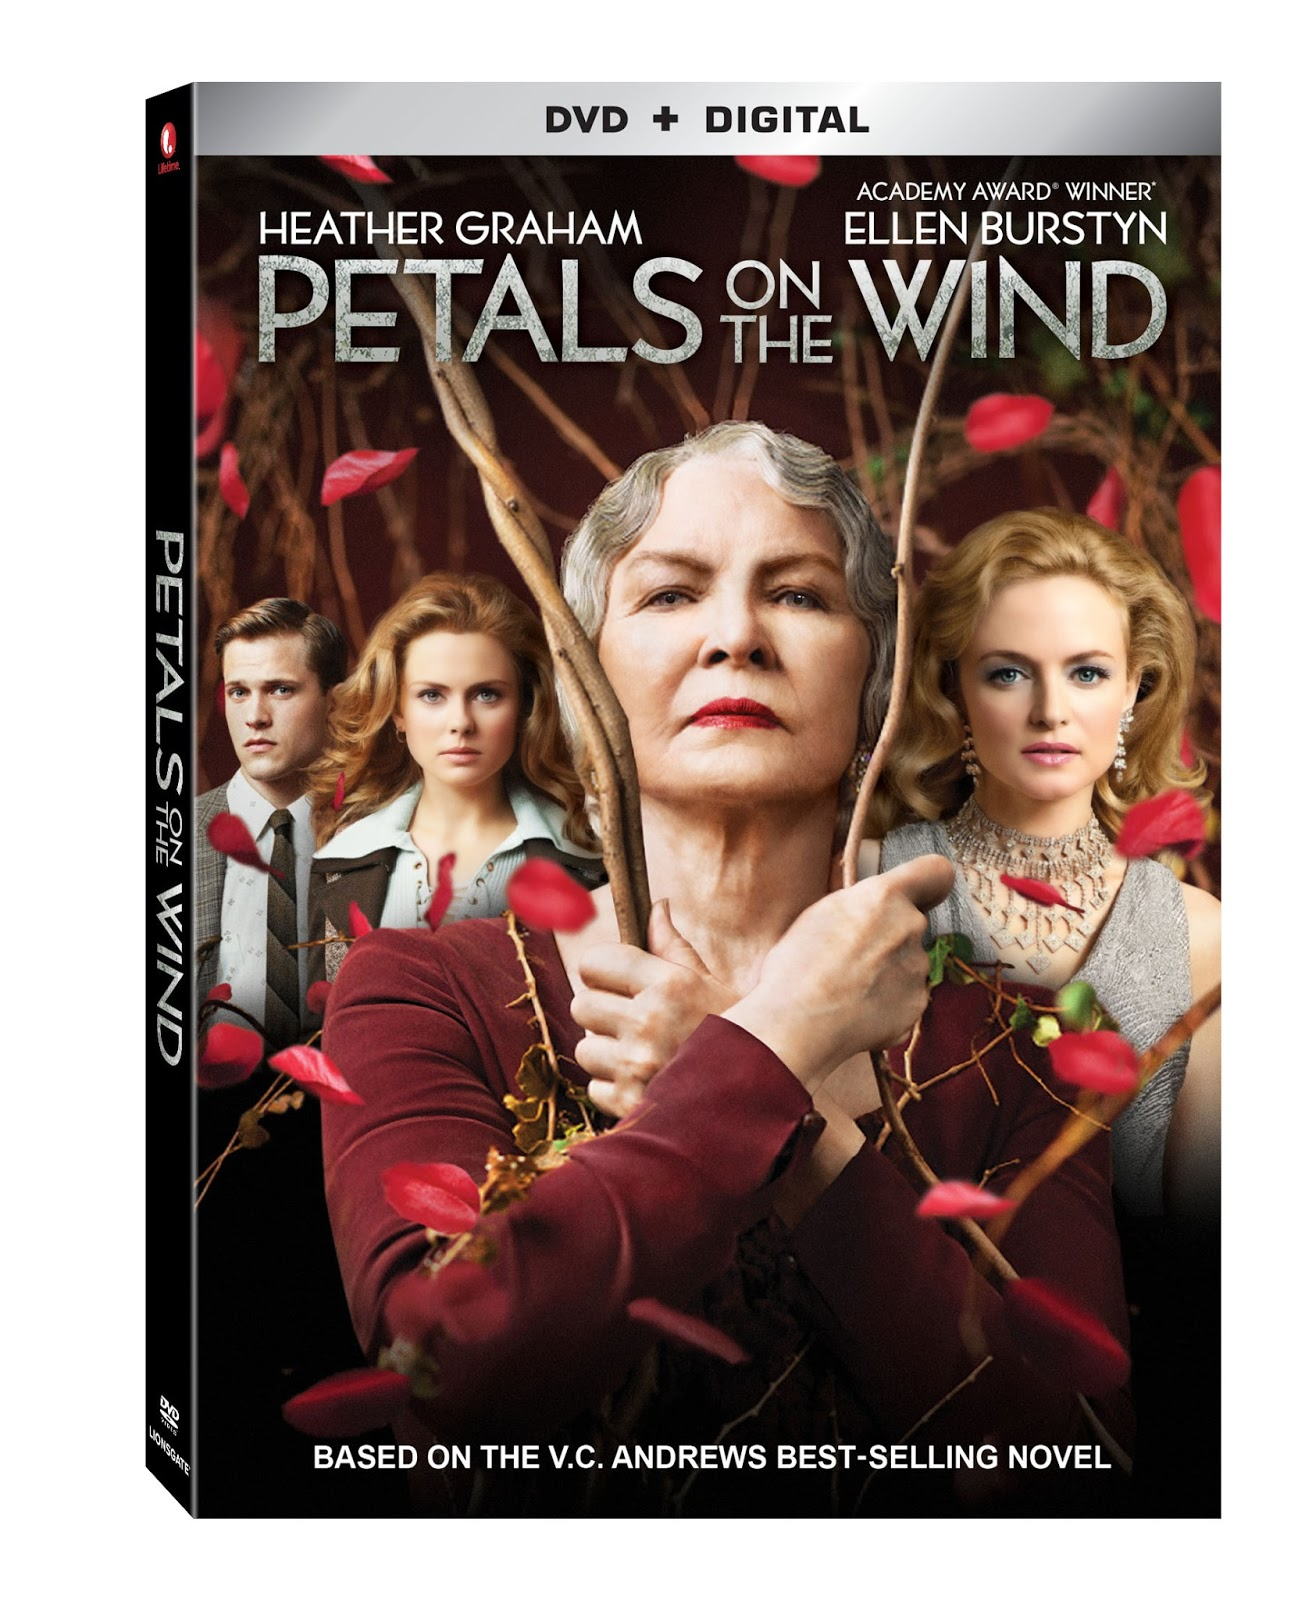 DVD Review - Petals on the Wind